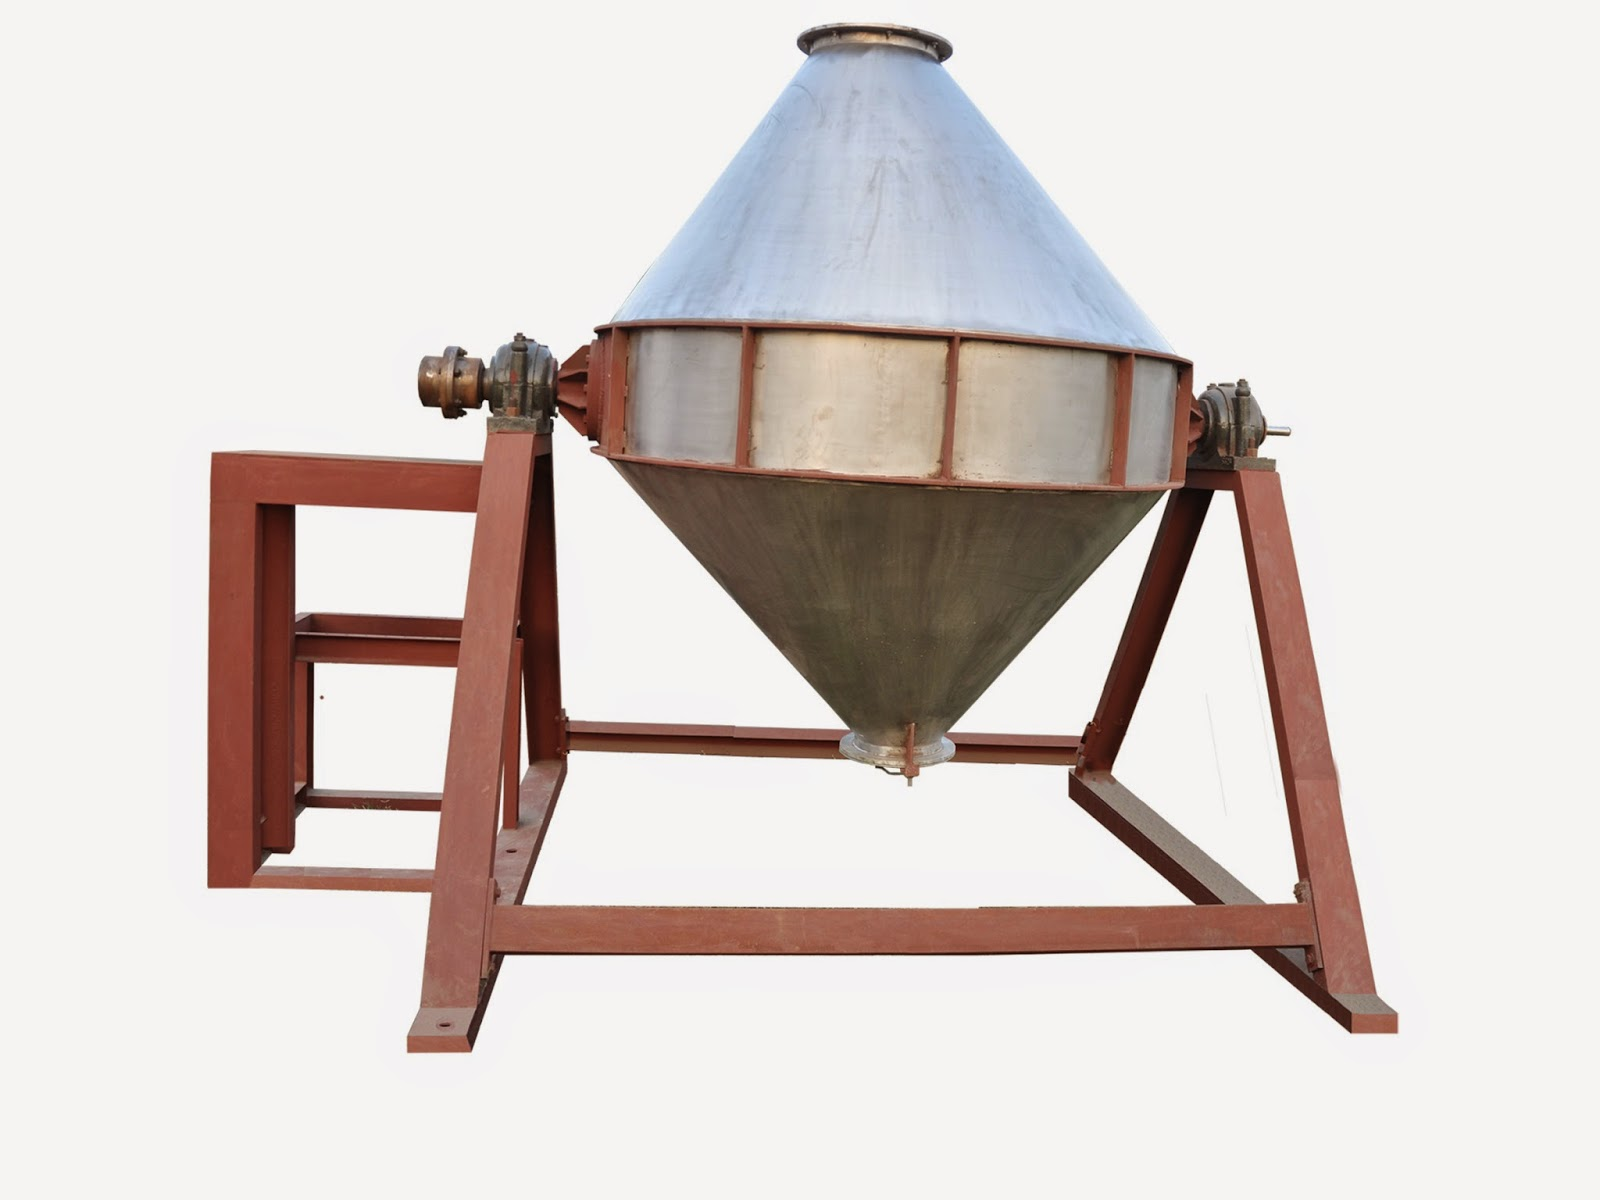 Double Cone Blender for Mixing Dry Powder